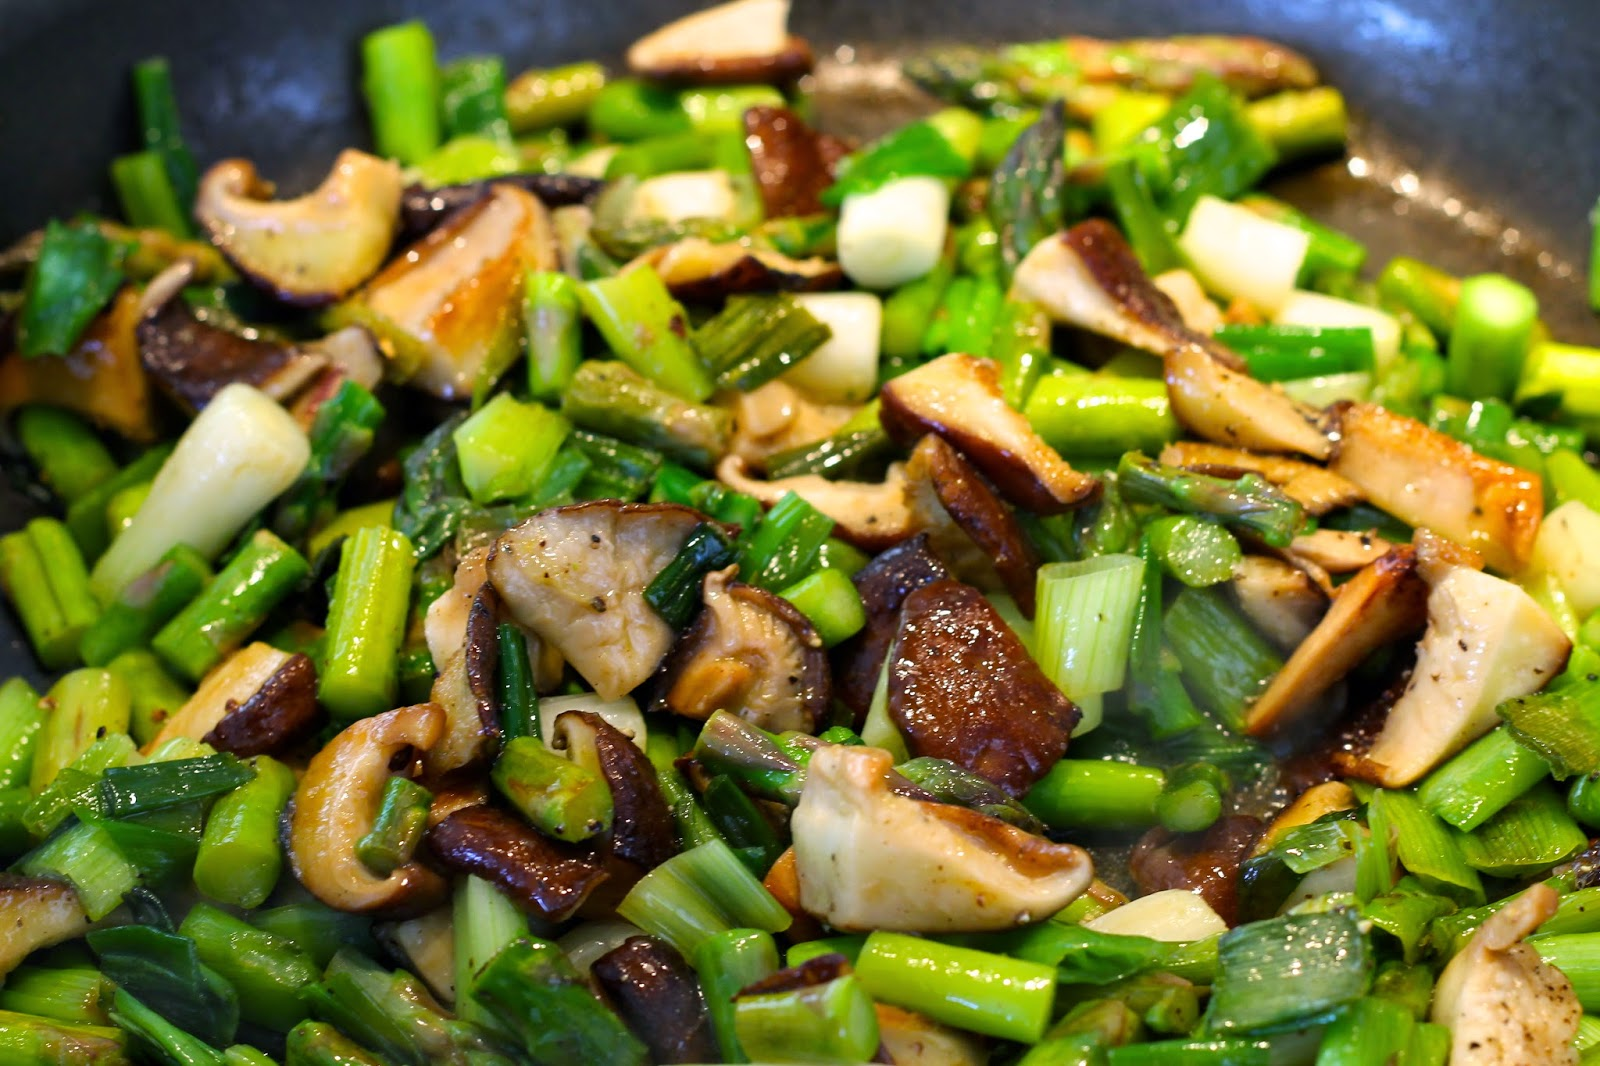 Saffron & Sun: Frittata with Asparagus, Scallions, Shiitaki Mushrooms ...